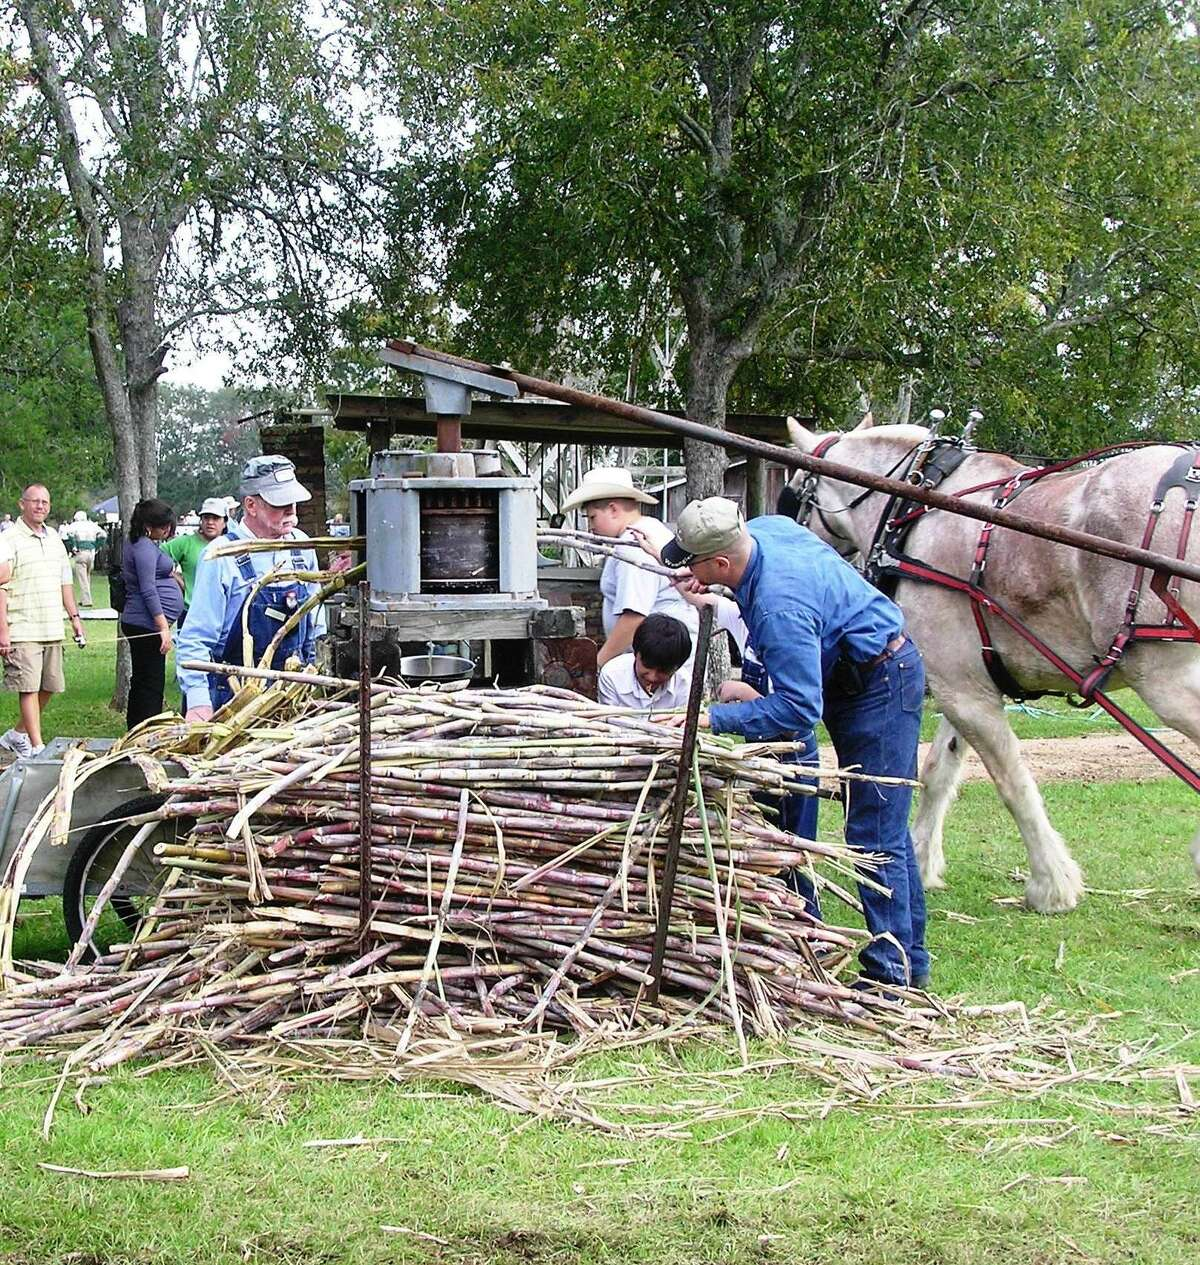 An Armand Bayou Nature Center employee feeds sugarcane stalks into cane press in preparation for making sugarcane syrup